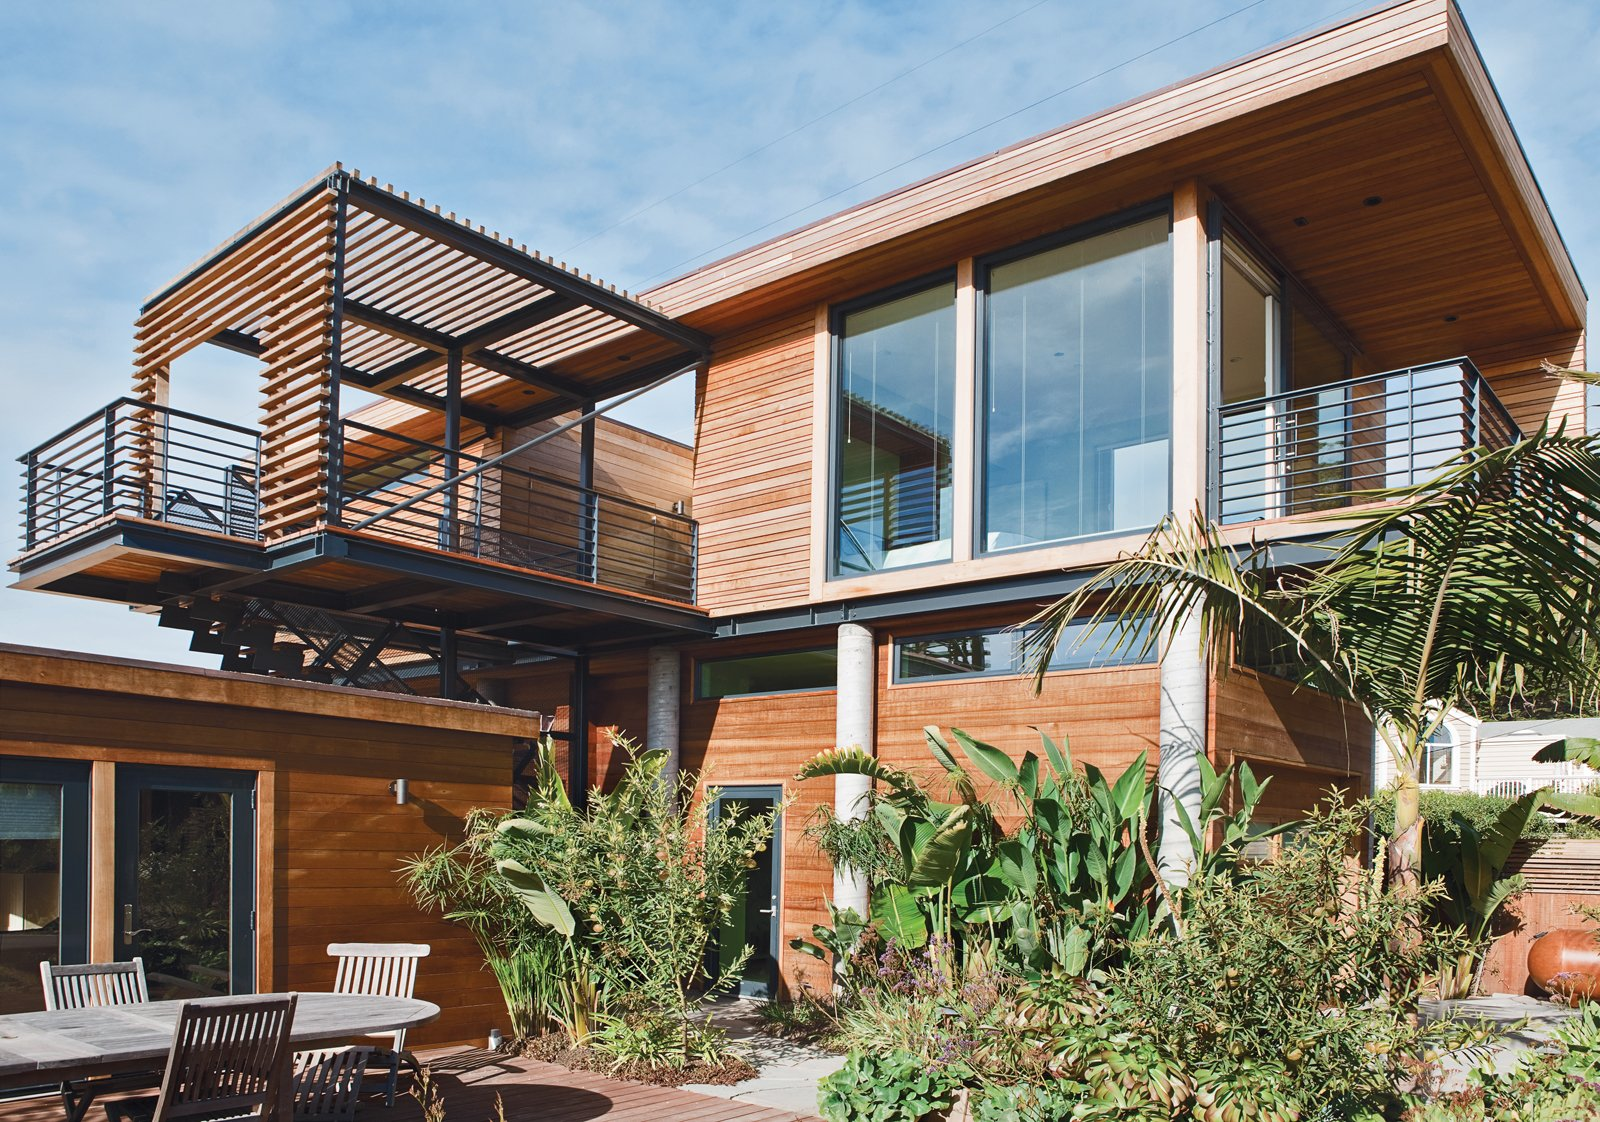 The cantilevered entry court assists with the reinforcement by securing the building's weight seaward.  Photo 9 of 10 in A Modern Coastal Home in Stinson Beach